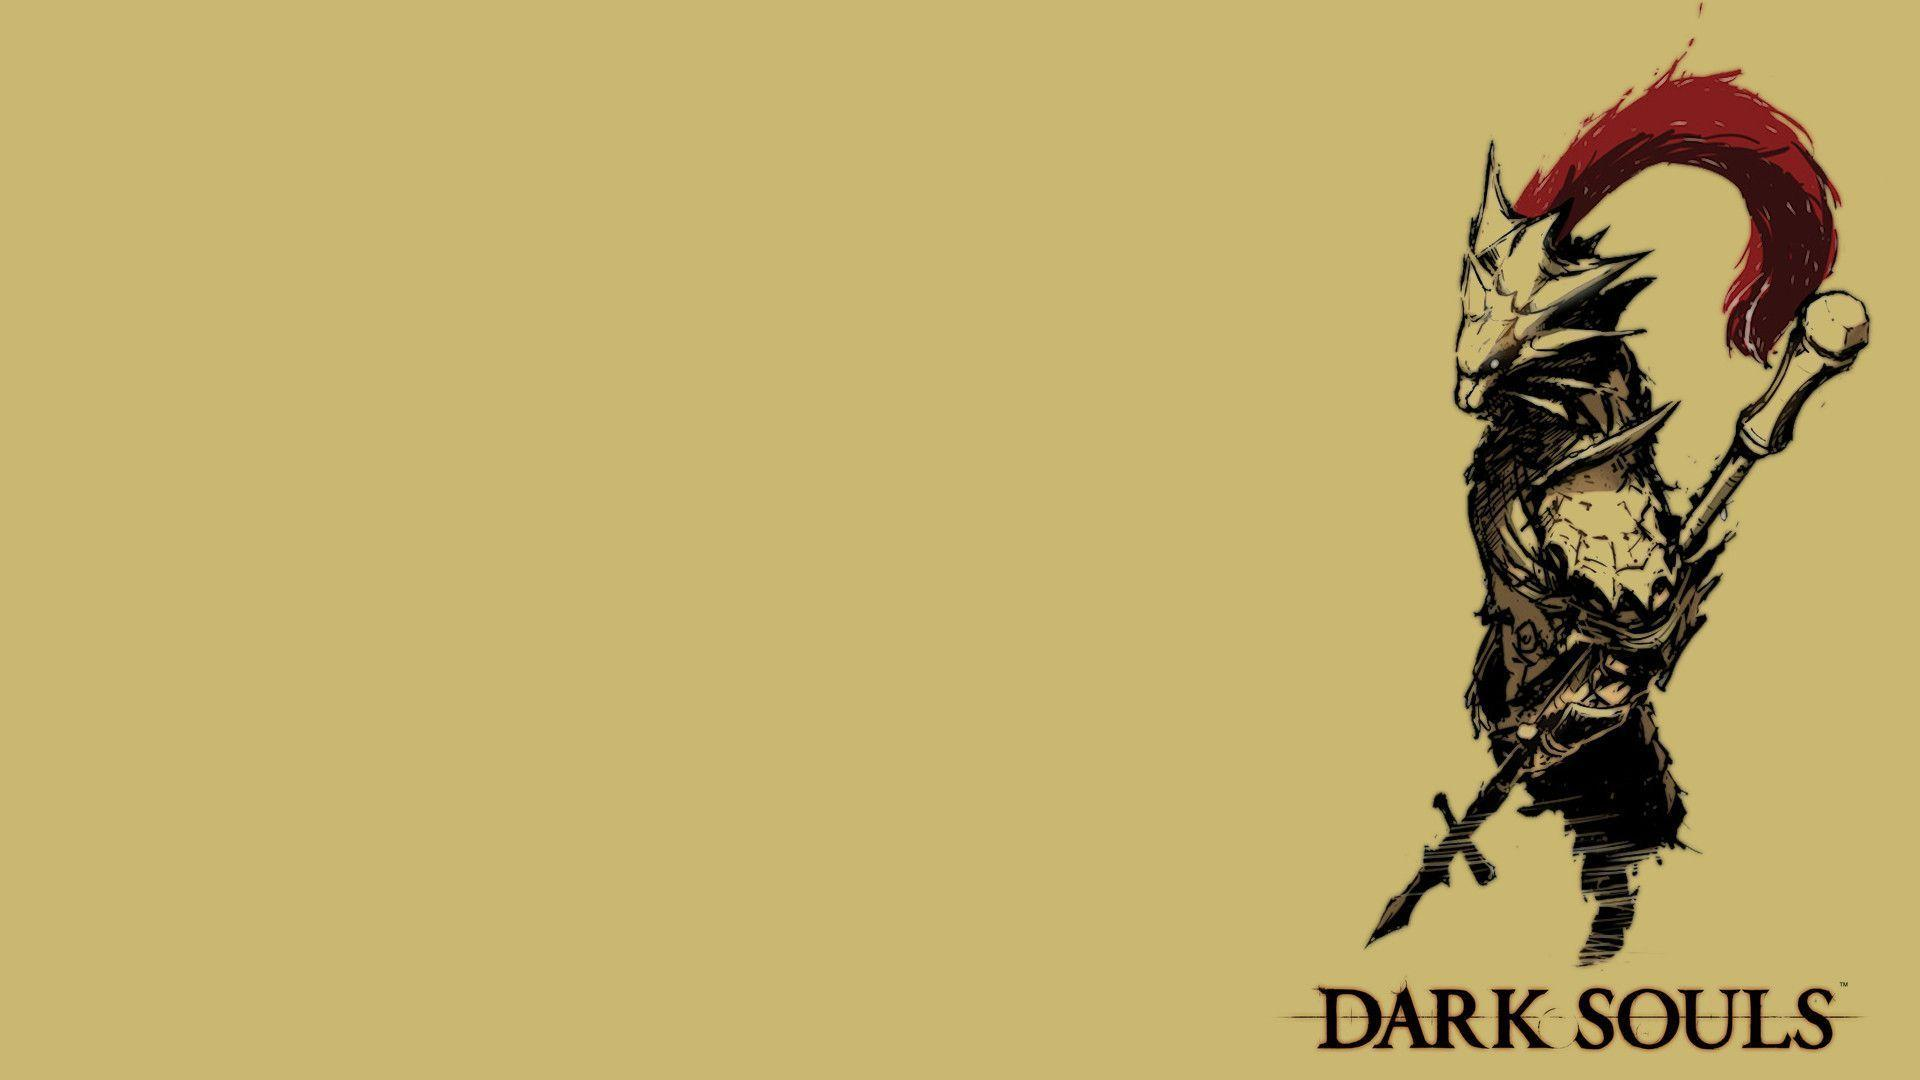 dark souls wallpaper breaking - photo #41